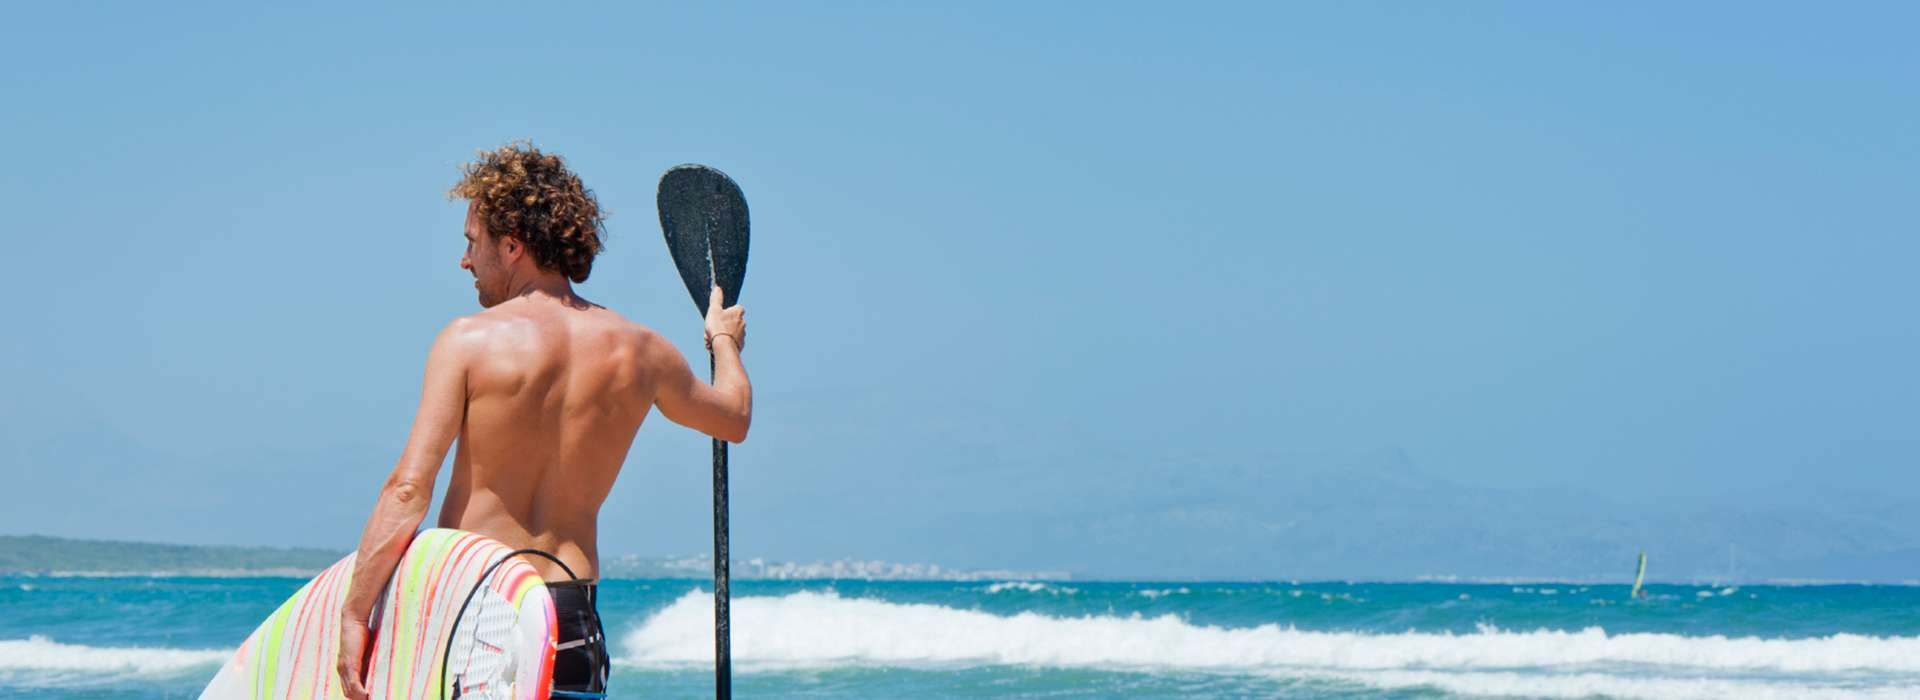 Paddle surf in Fuerteventura